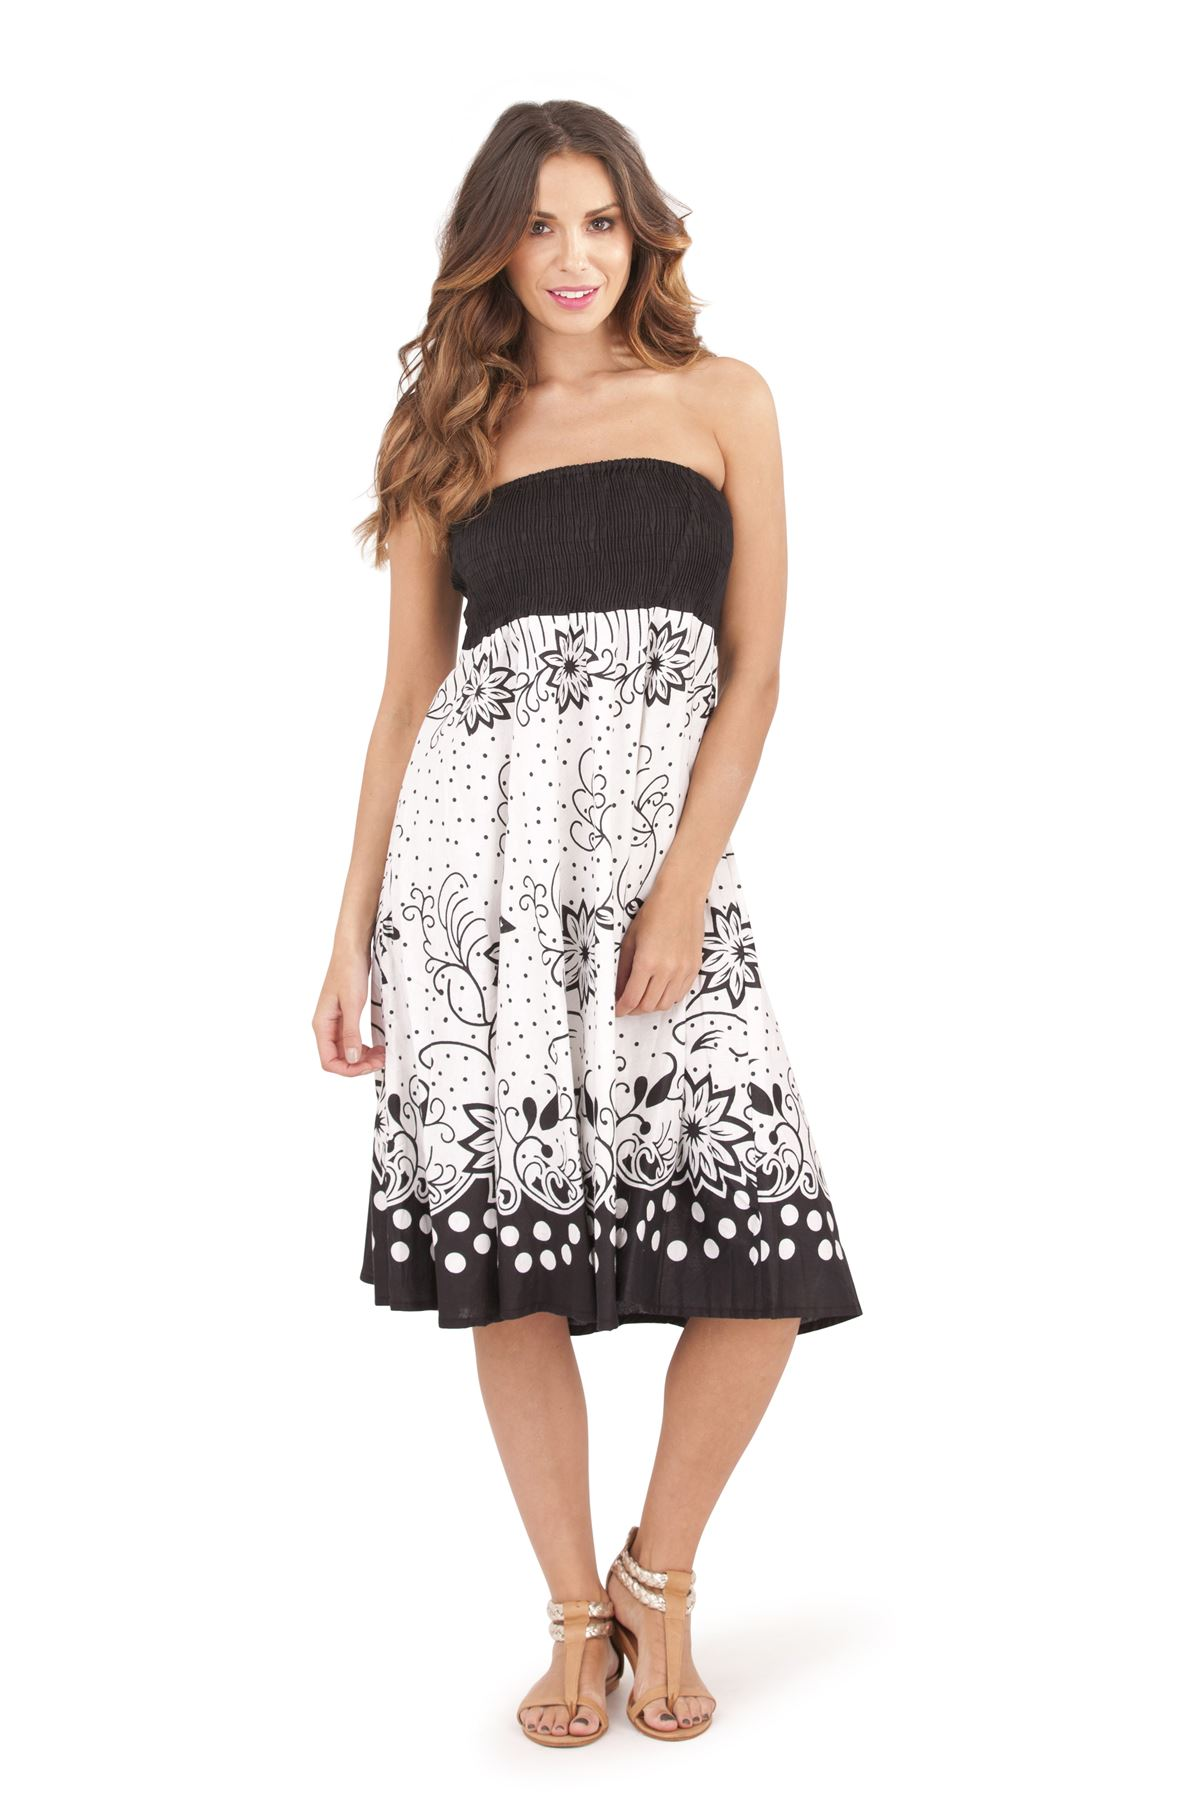 Casual Dresses: Free Shipping on orders over $45 at xajk8note.ml - Your Online Dresses Store! Get 5% in rewards with Club O!